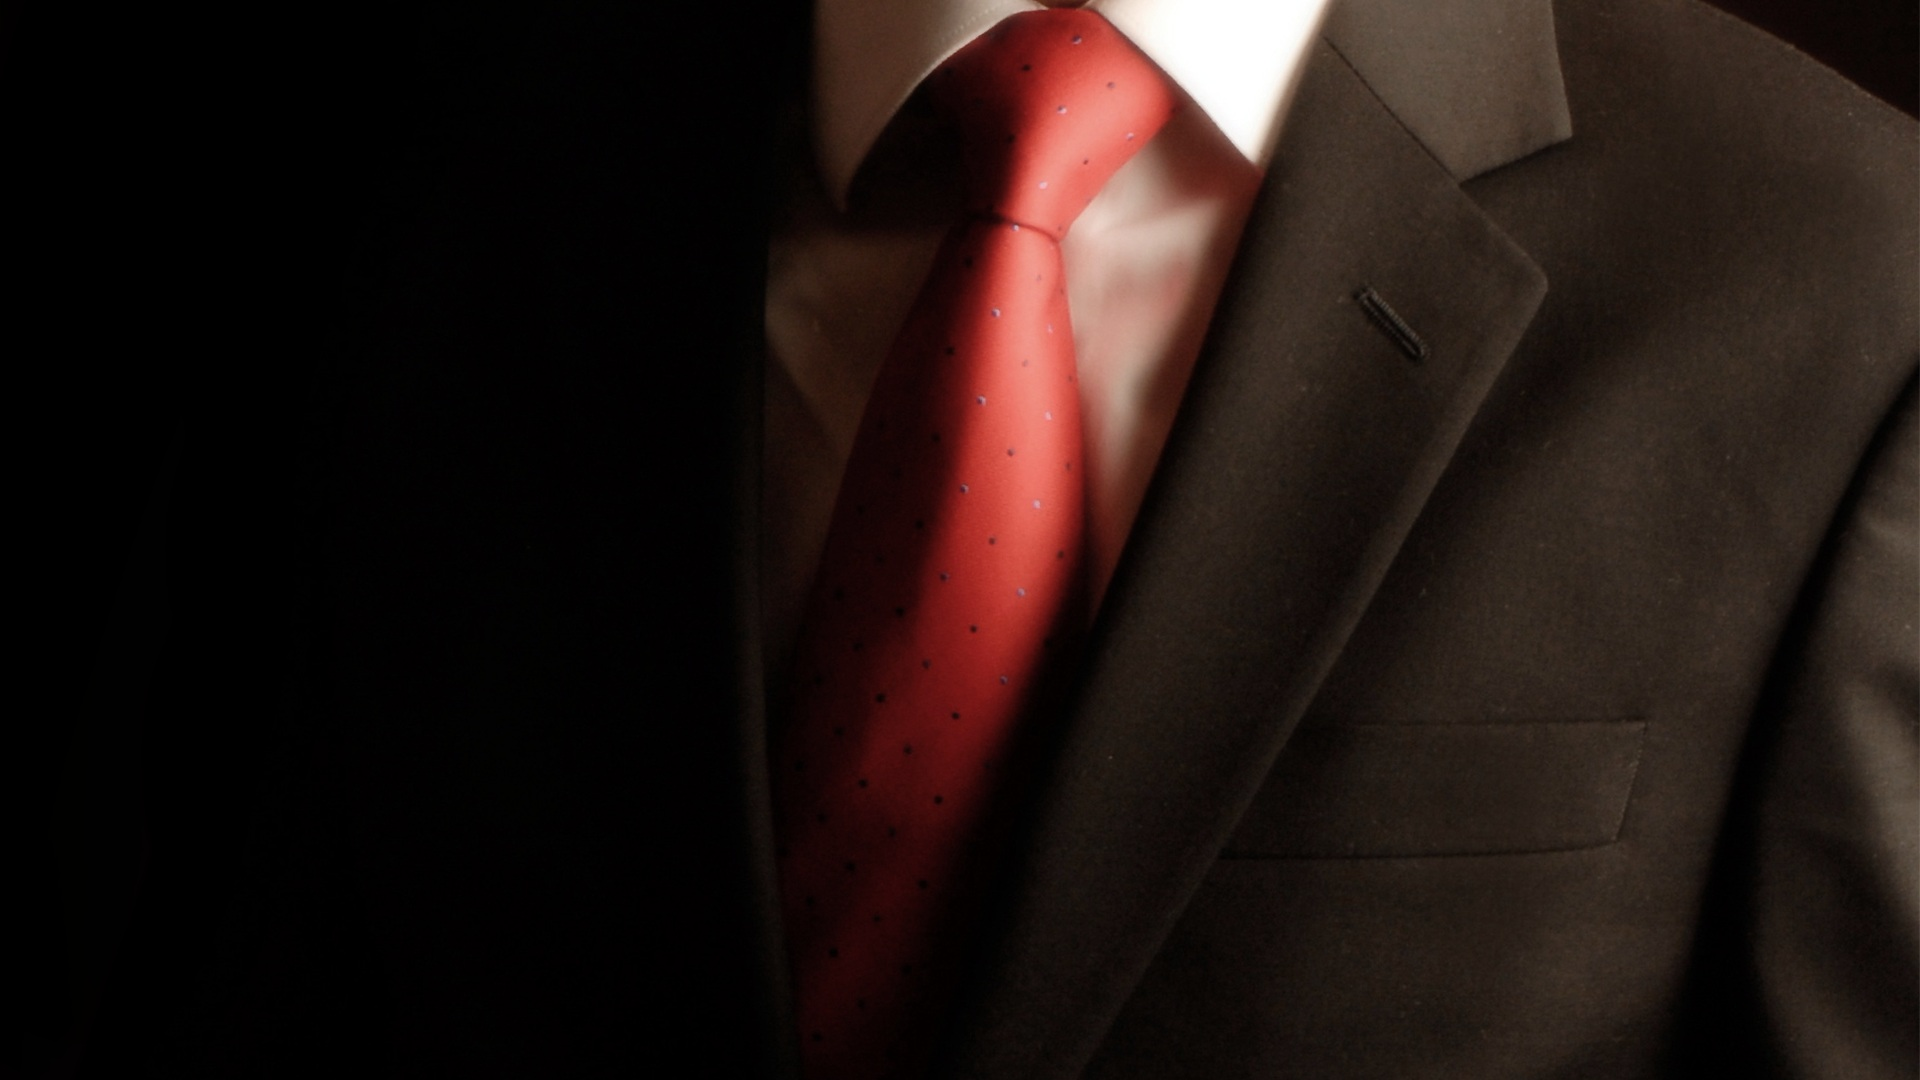 Expensive suit high quality material and fabric custom made bespoke Red Tie